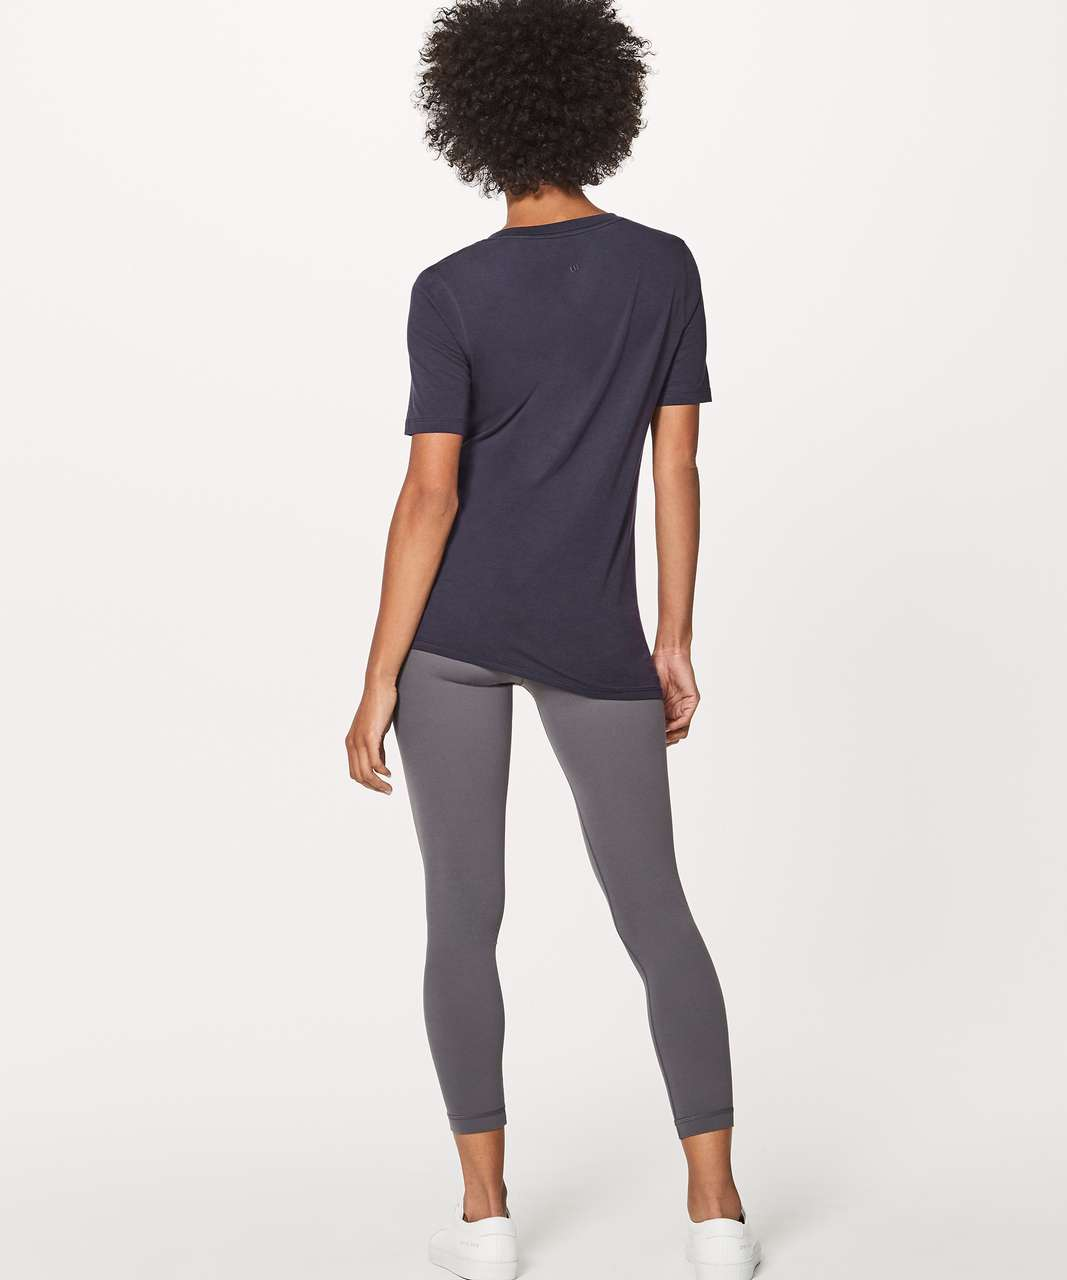 Lululemon Love Tee IV - Boysenberry